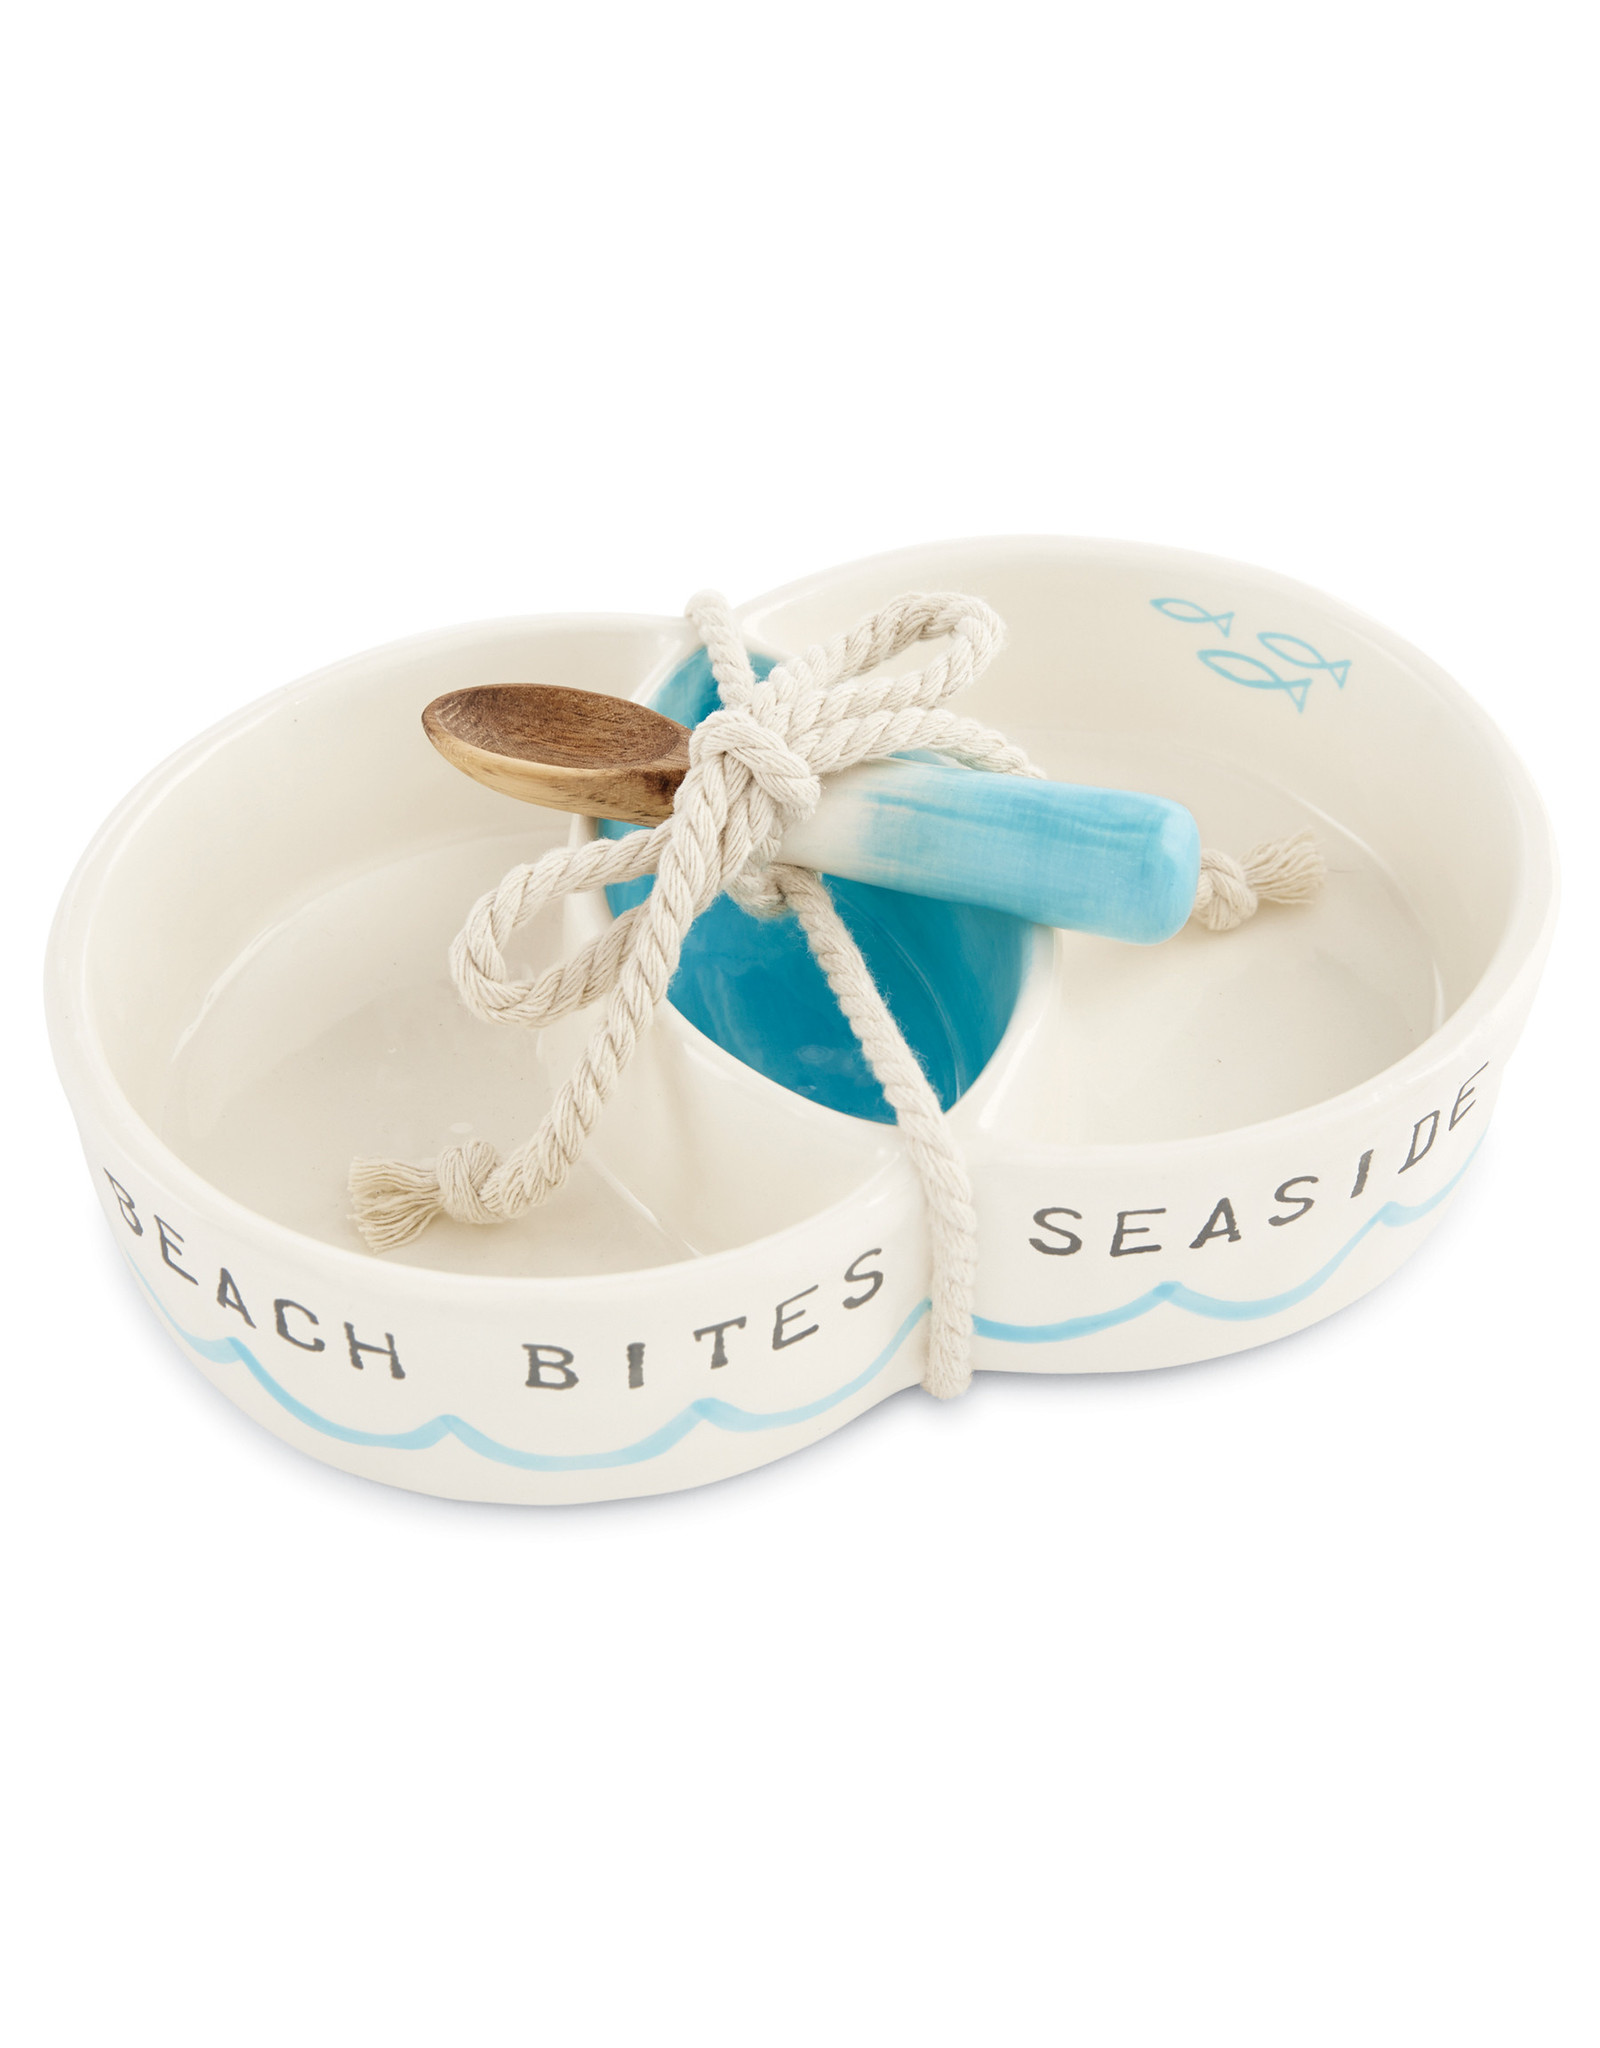 Beach Bites Server Set